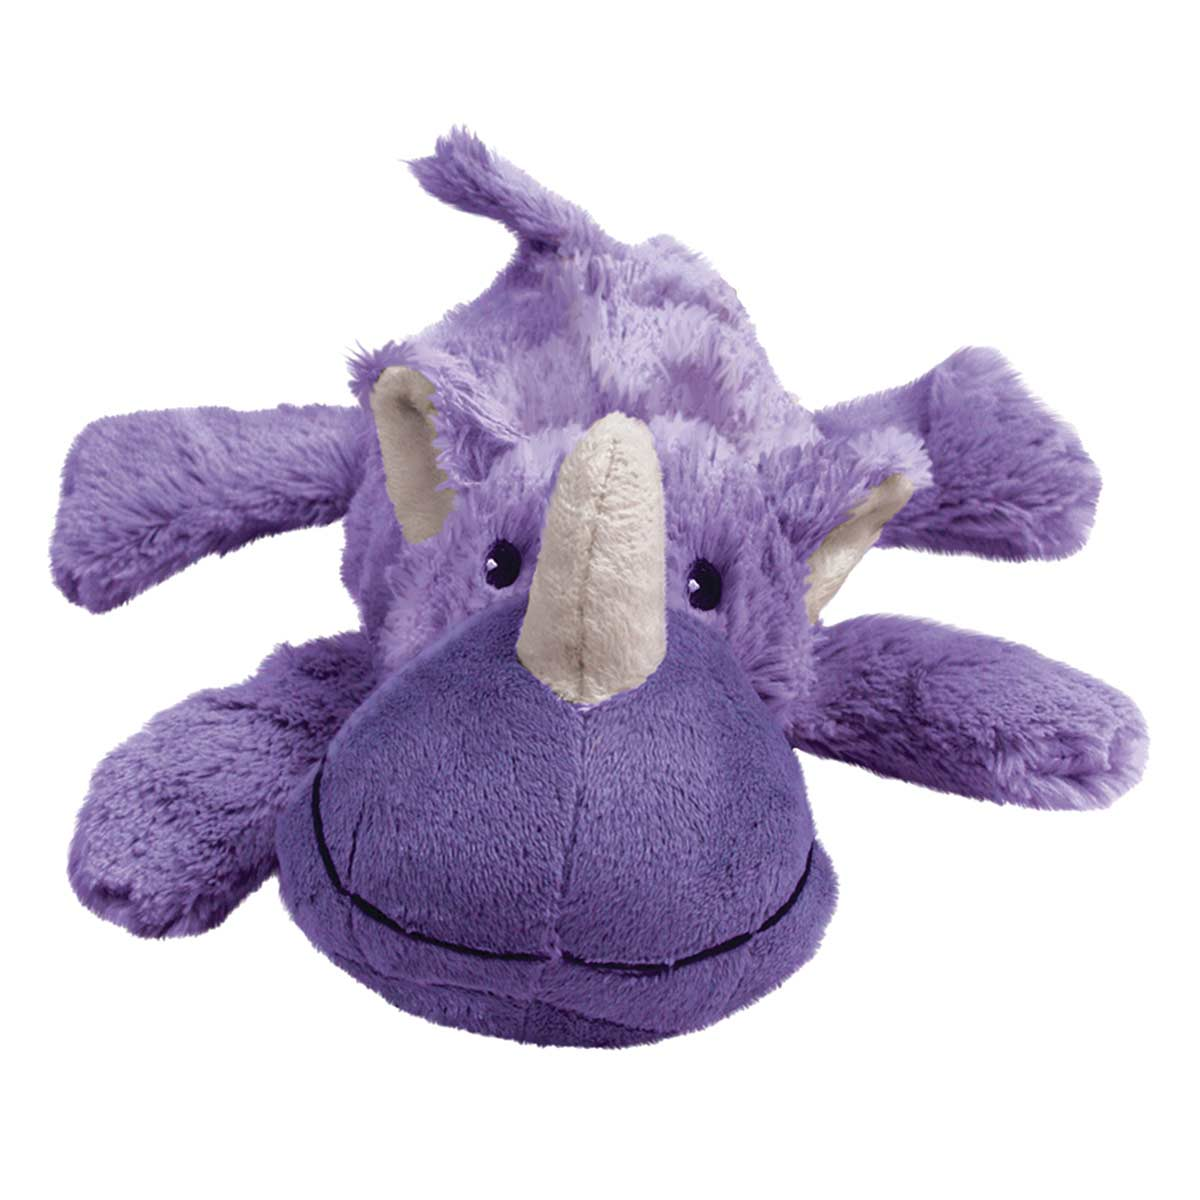 Purple KONG Cozie Rosie Plush Stuffed Toy for Dogs